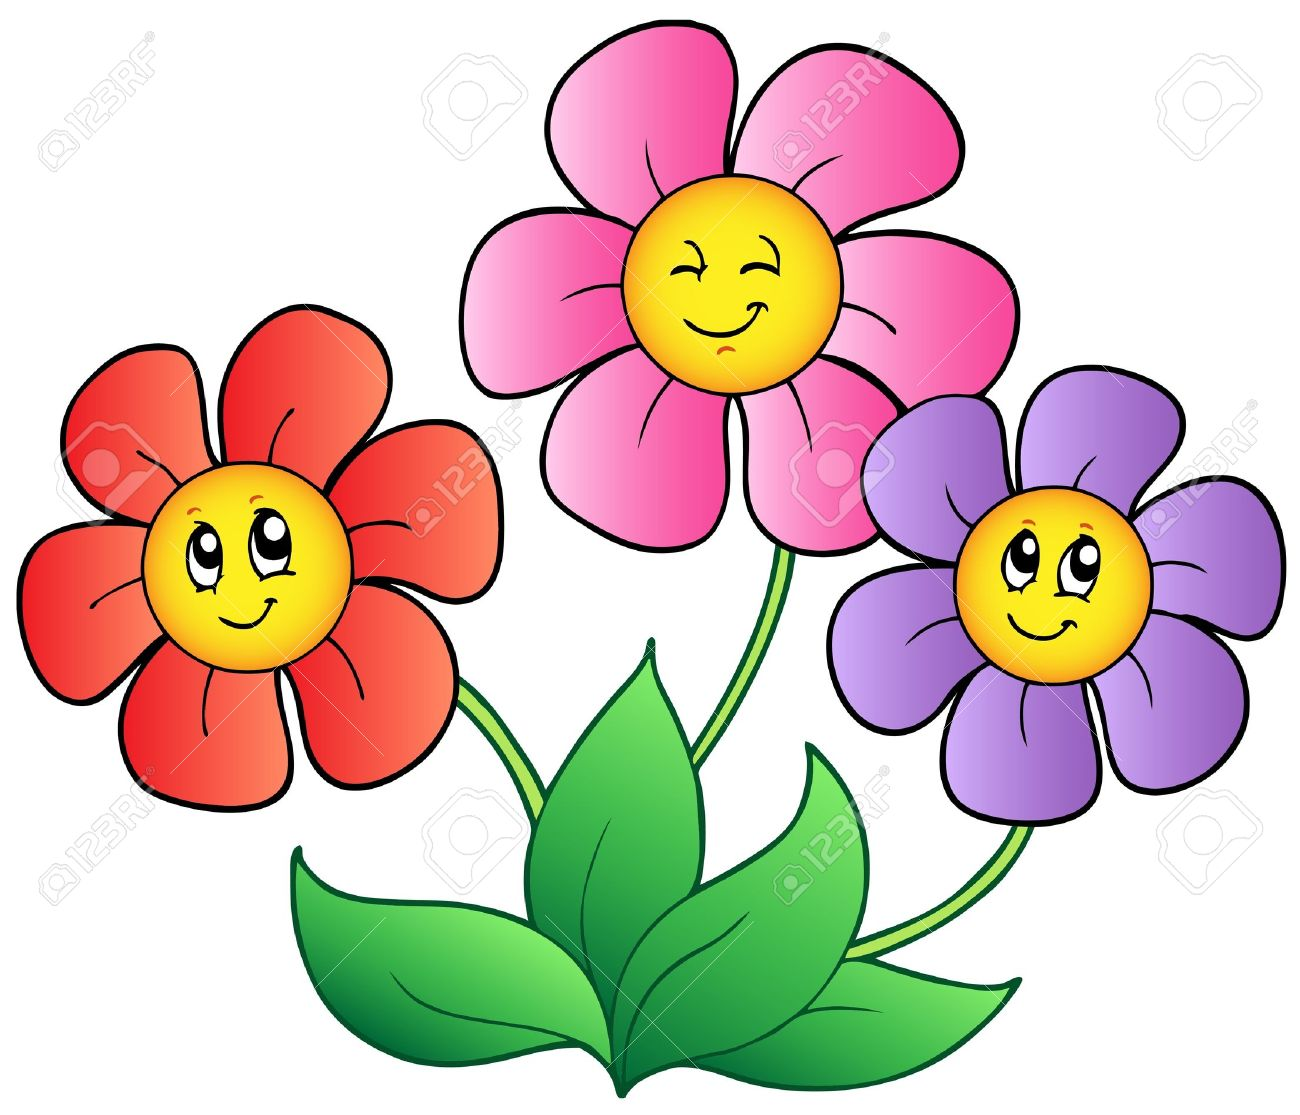 three cartoon flowers royalty free cliparts vectors and stock rh 123rf com cartoon flower garden cartoon flowers to draw